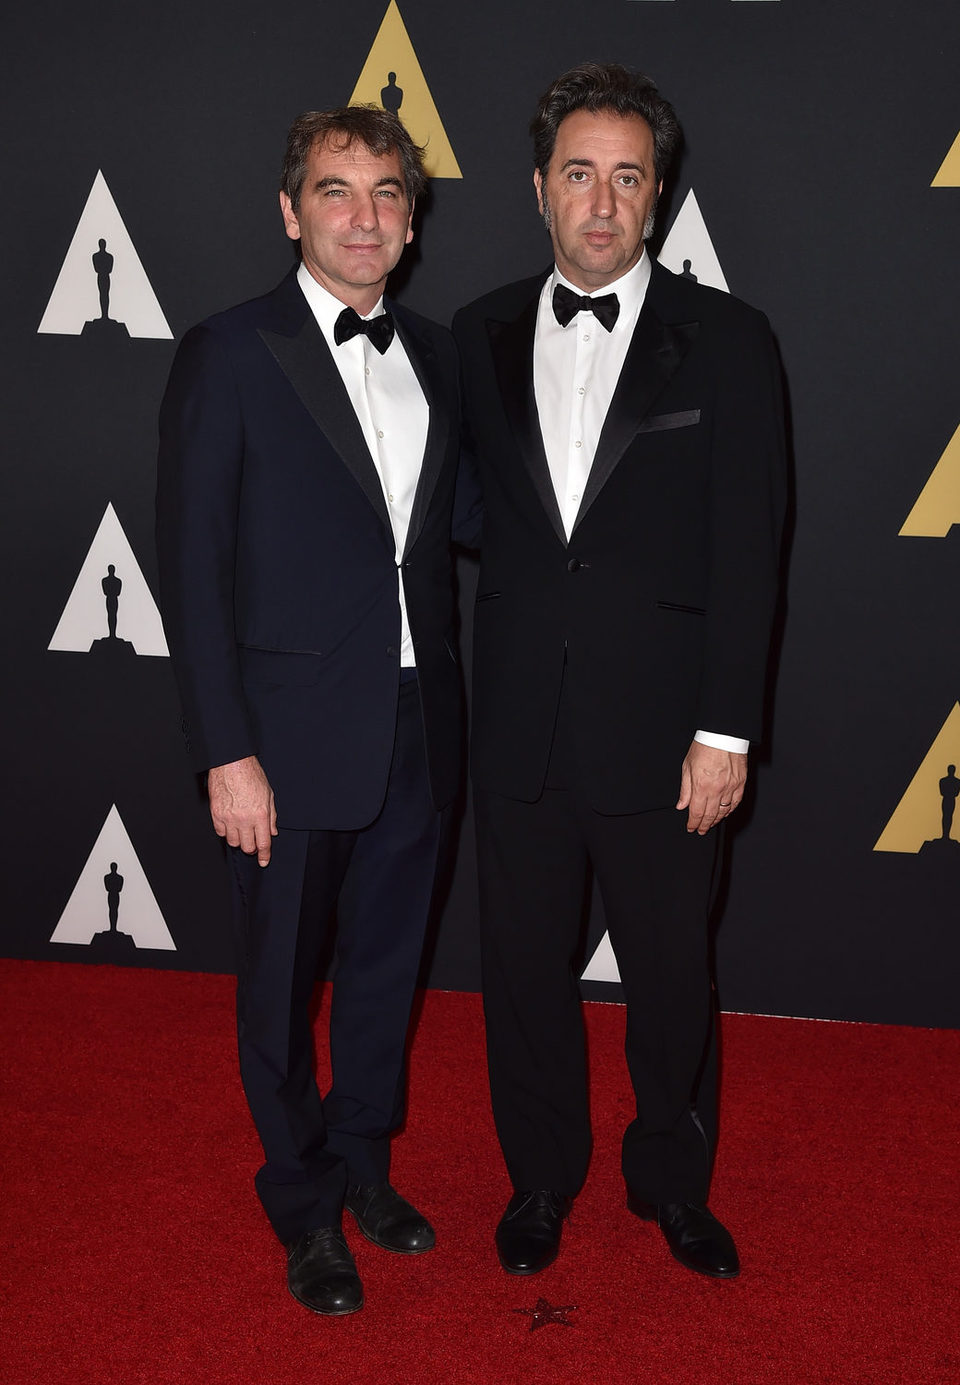 Nicola Giuliano y Paolo Sorrentino en los Governor's Awards 2015